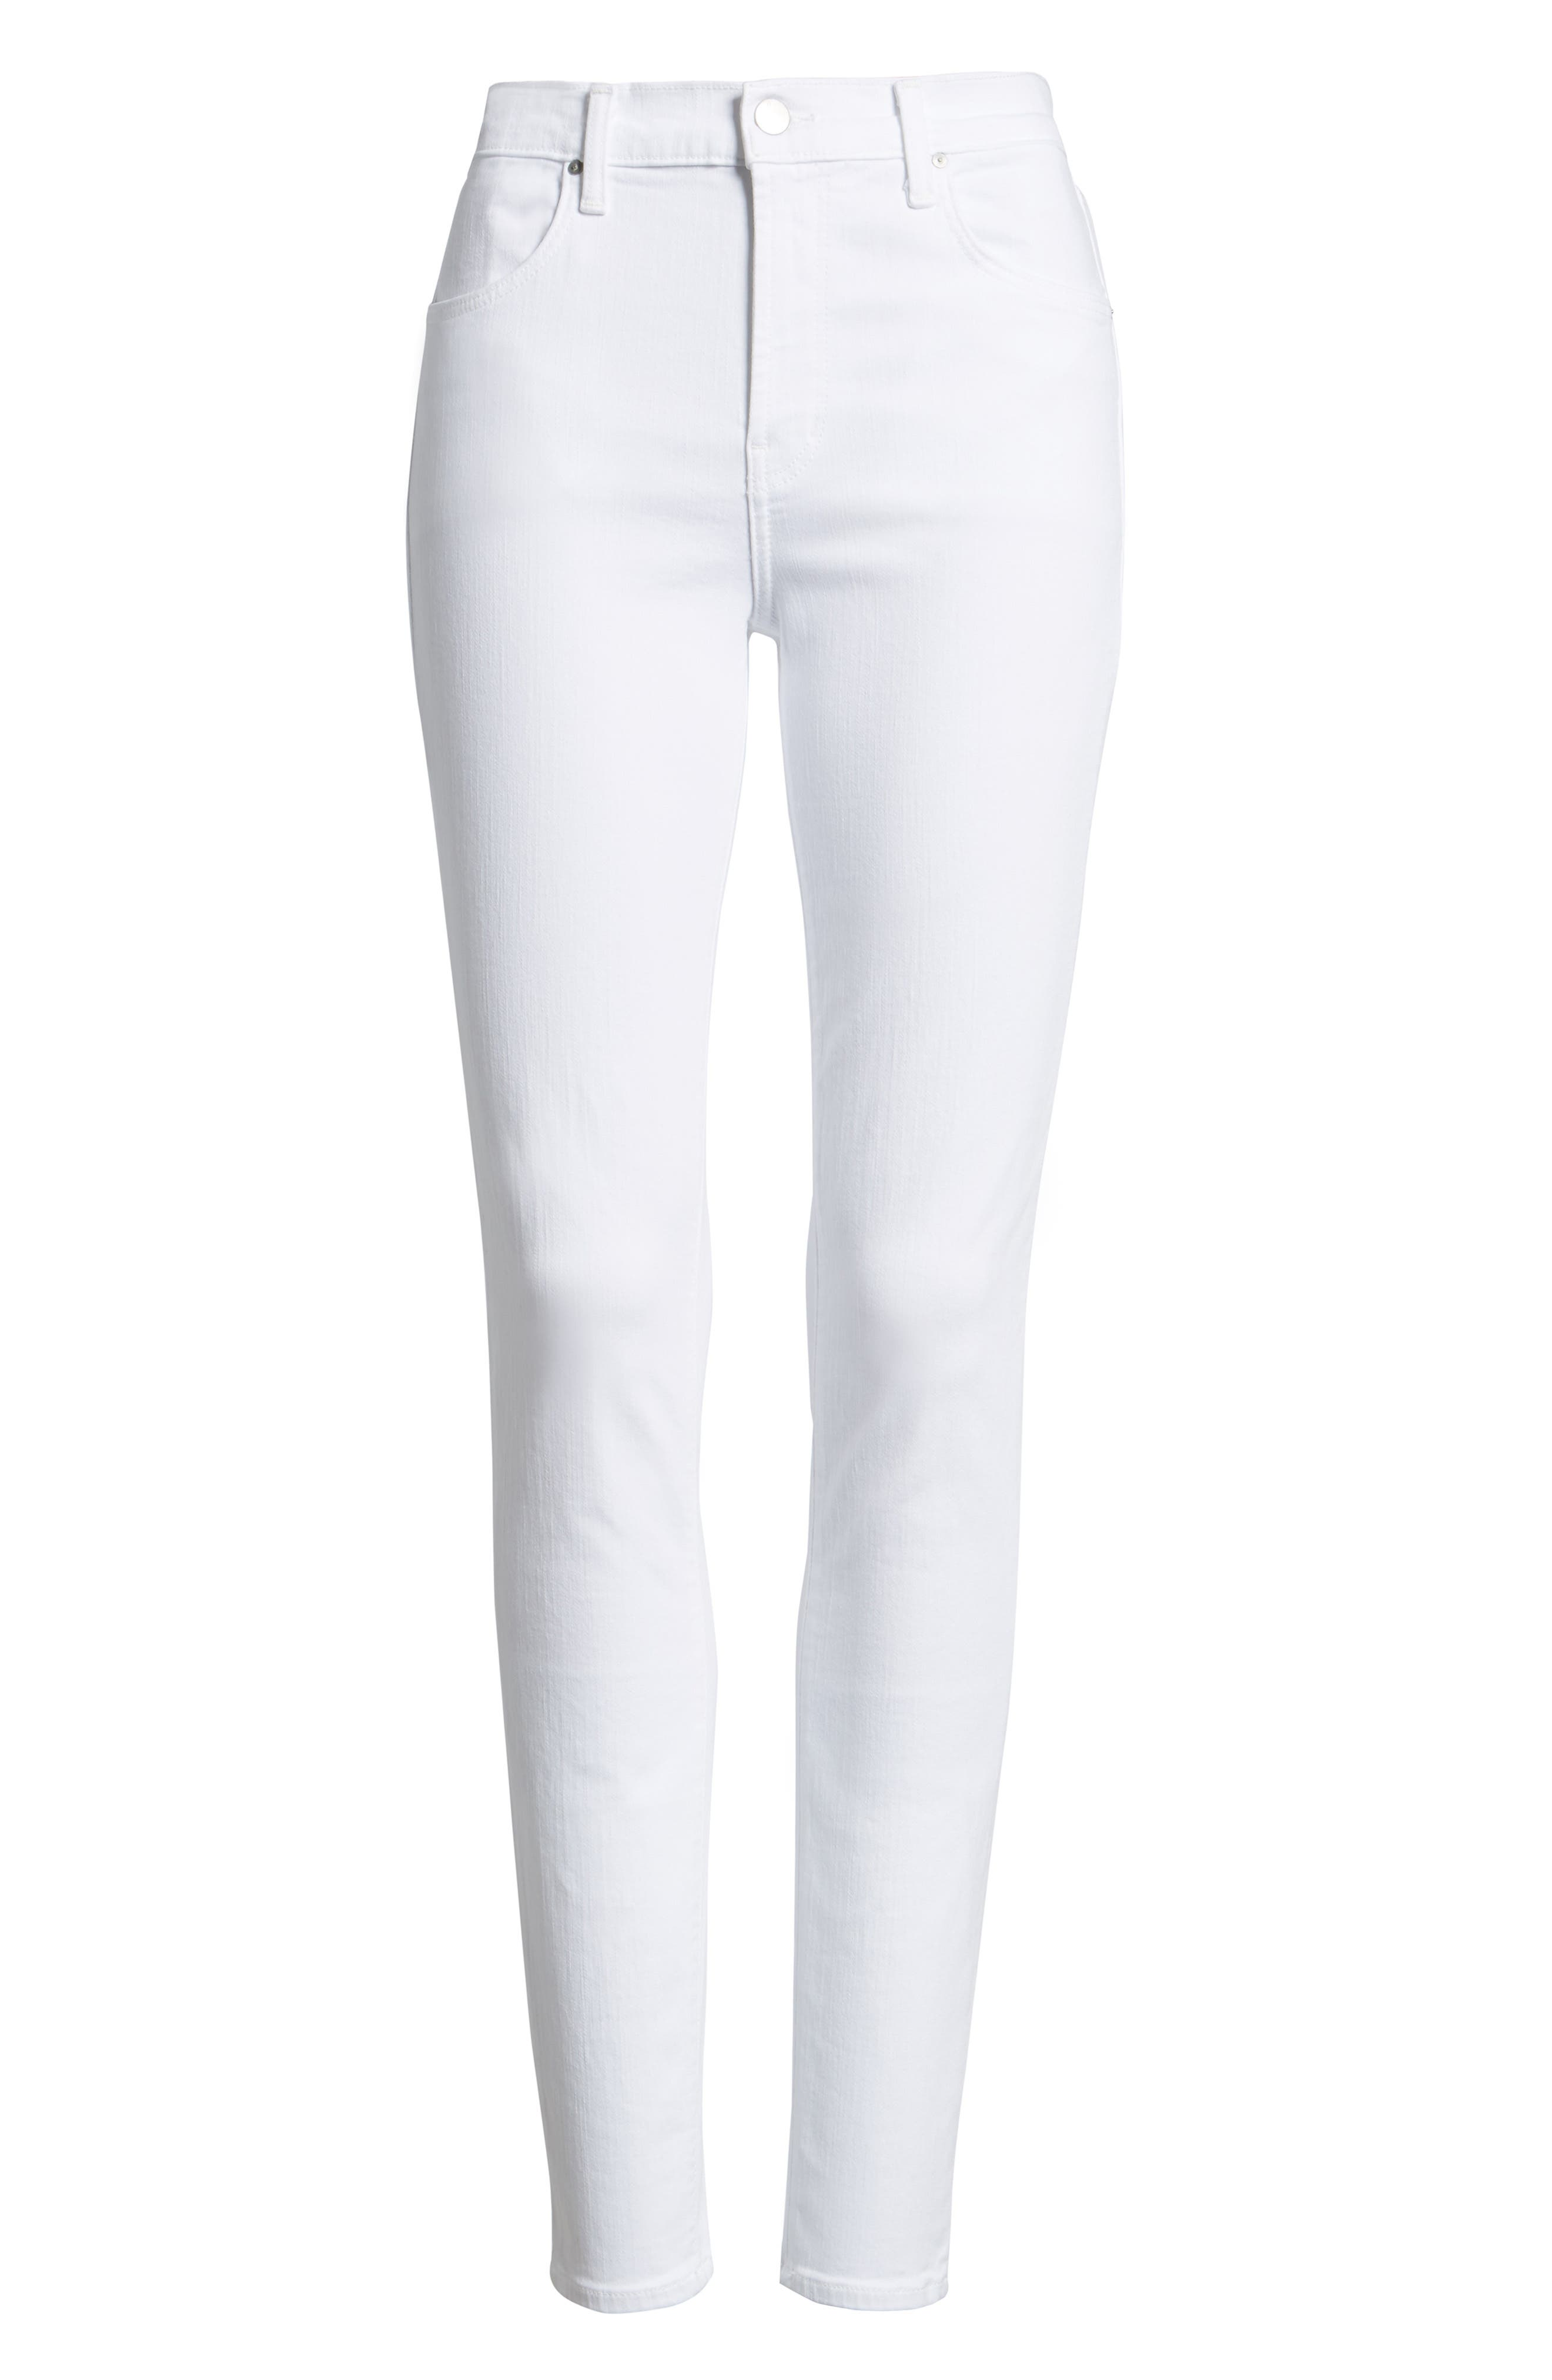 2311 Maria High Waist Super Skinny Jeans,                             Alternate thumbnail 6, color,                             Blanc